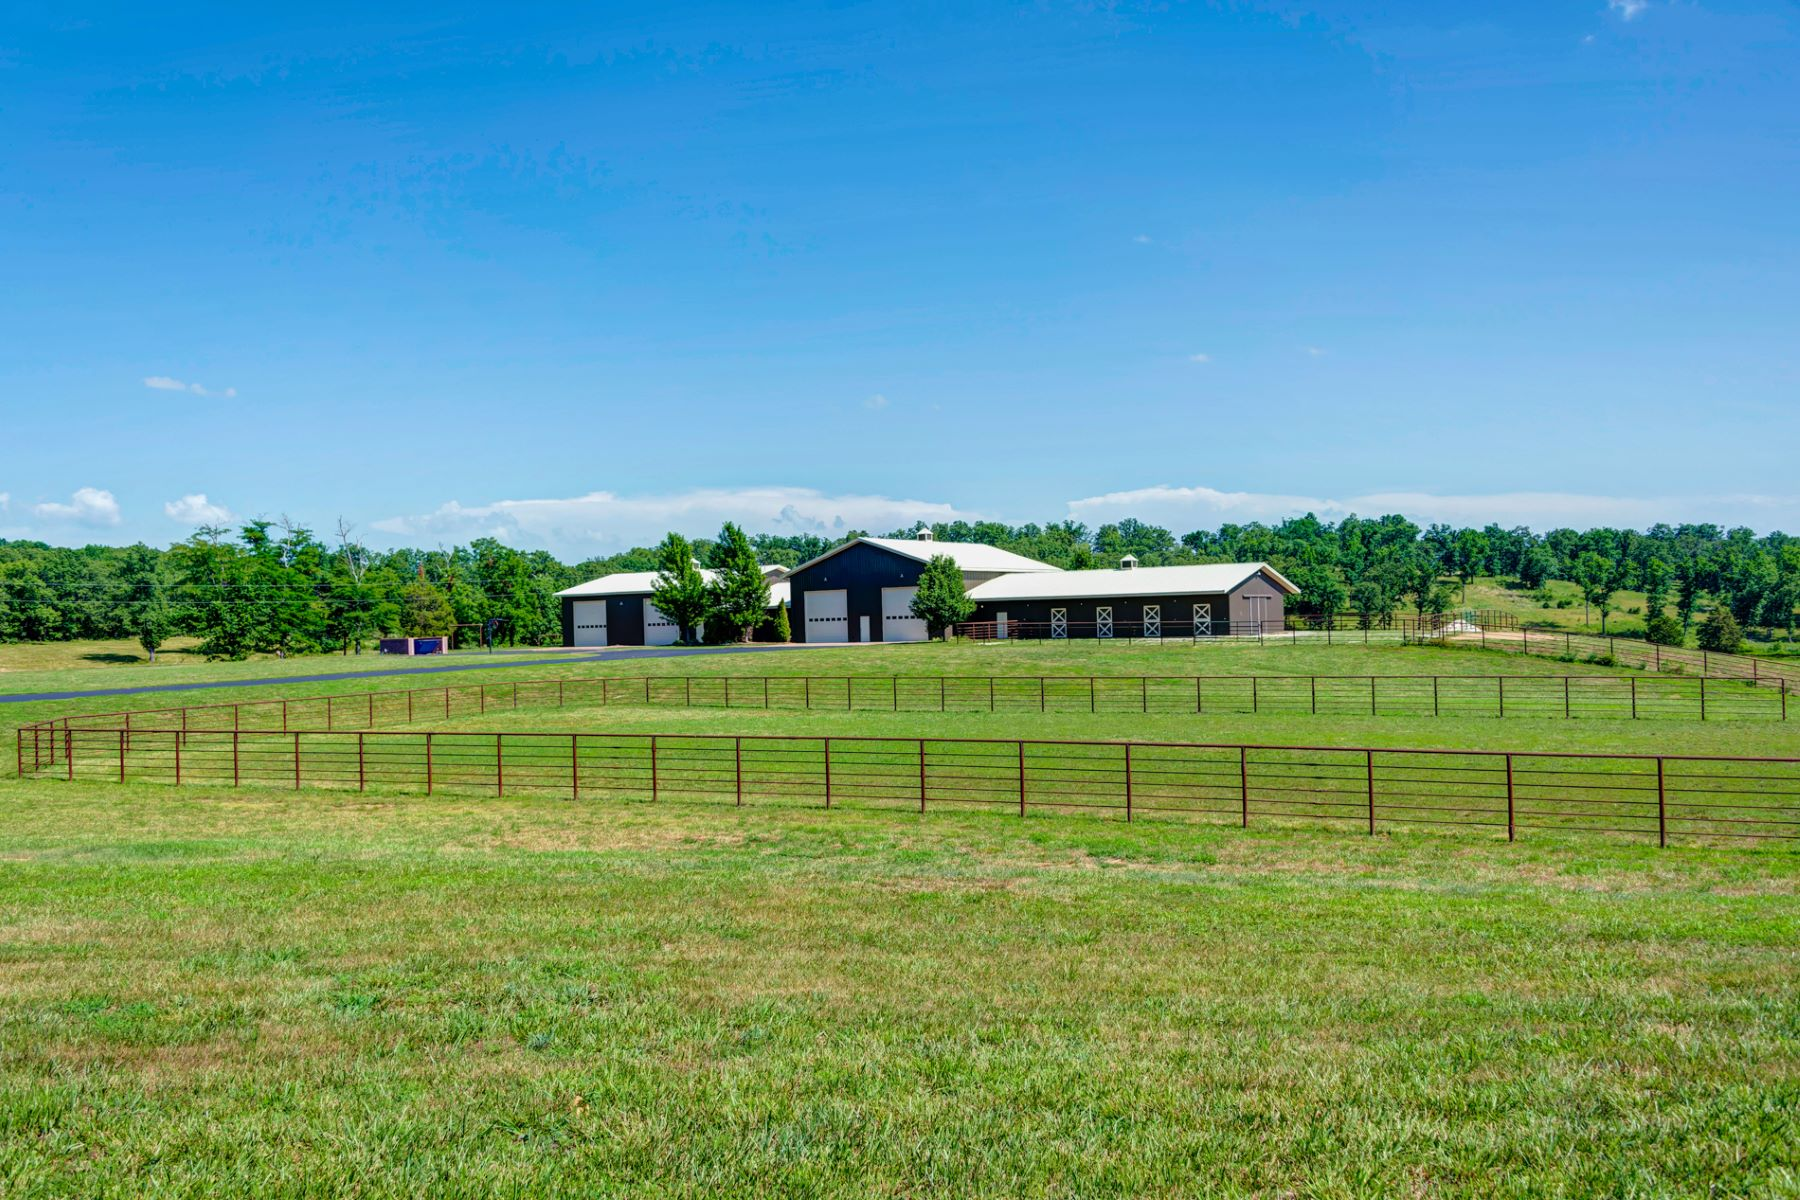 Additional photo for property listing at Horse Power Ranch 1812 Highway 42 Brumley, Missouri 65017 United States